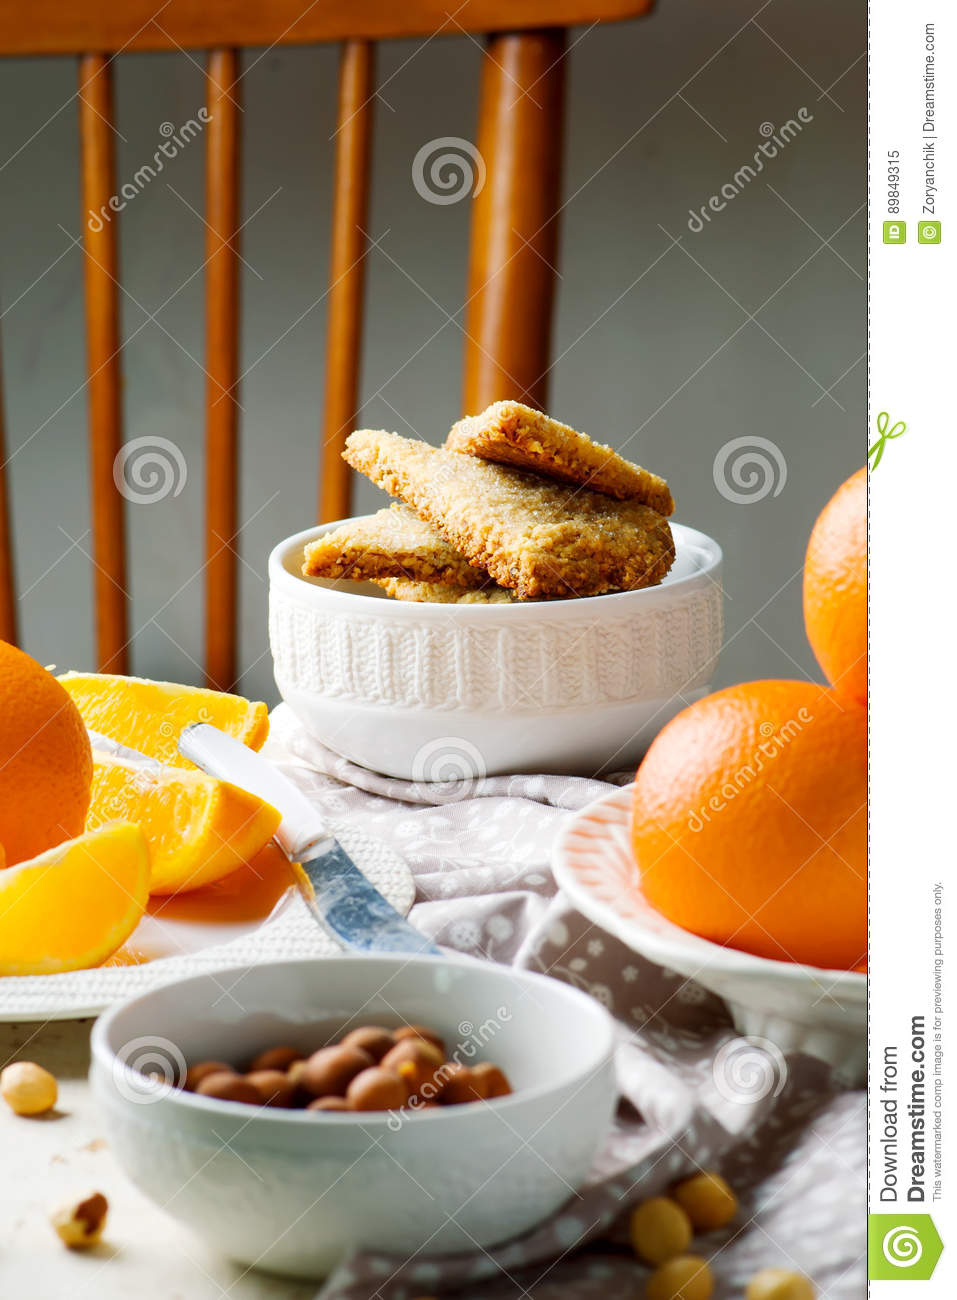 Hazelnut Orange Shortbread.style Rustic Stock Photo - Image: 89849315